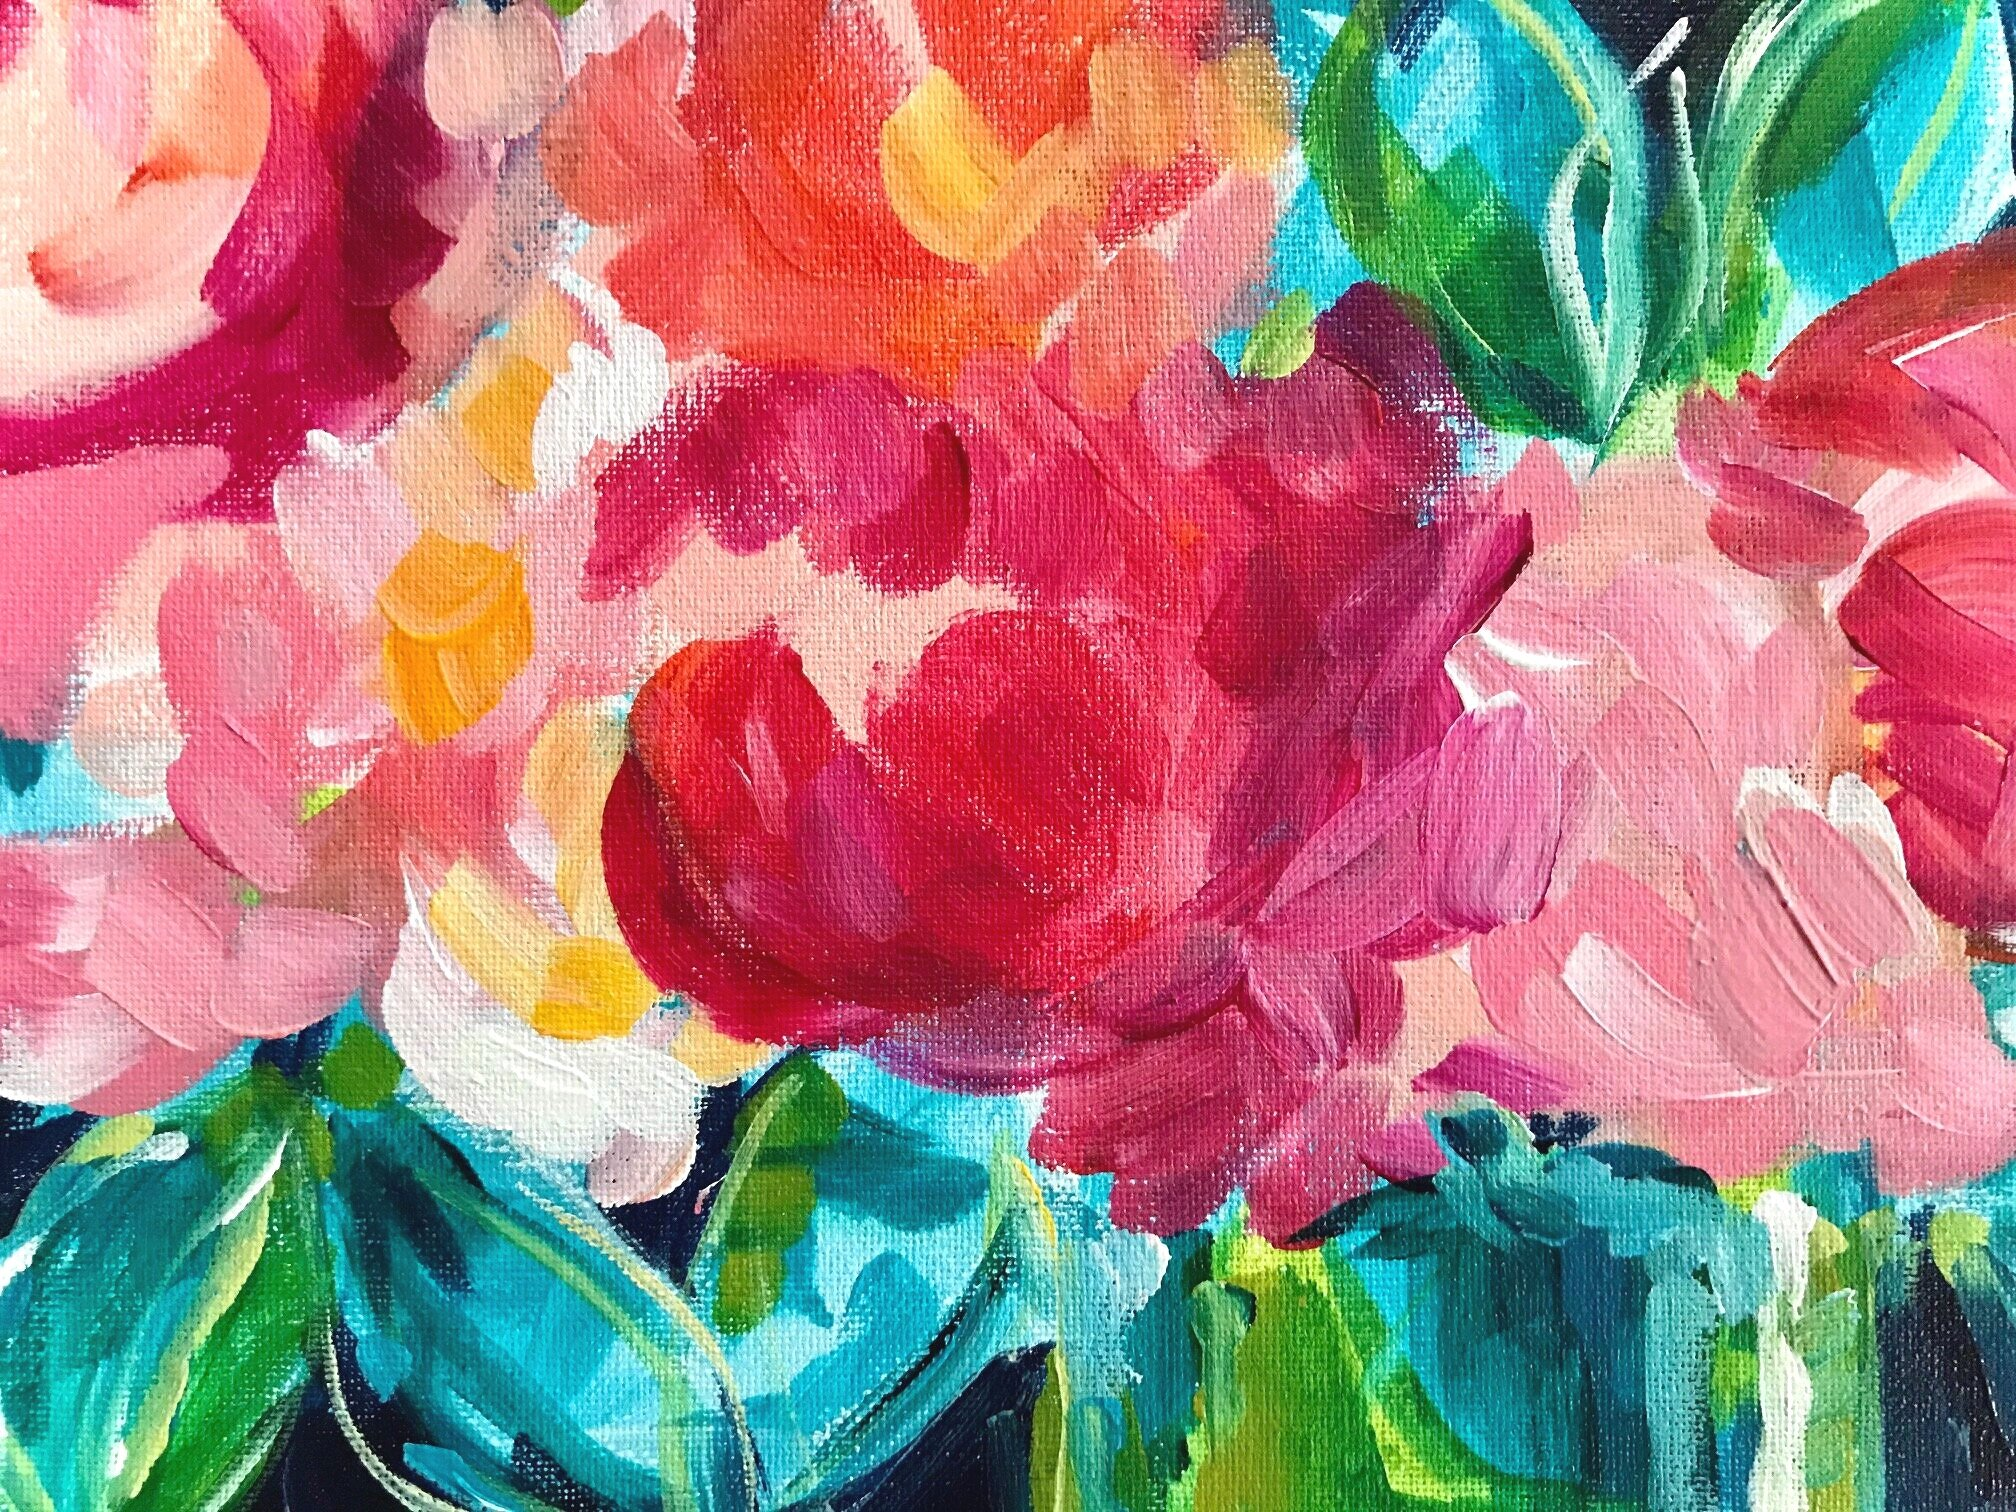 How To Paint Abstract Flowers In Acrylic On Canvas Flower Painting Tutorials On Youtube Elle Byers Art